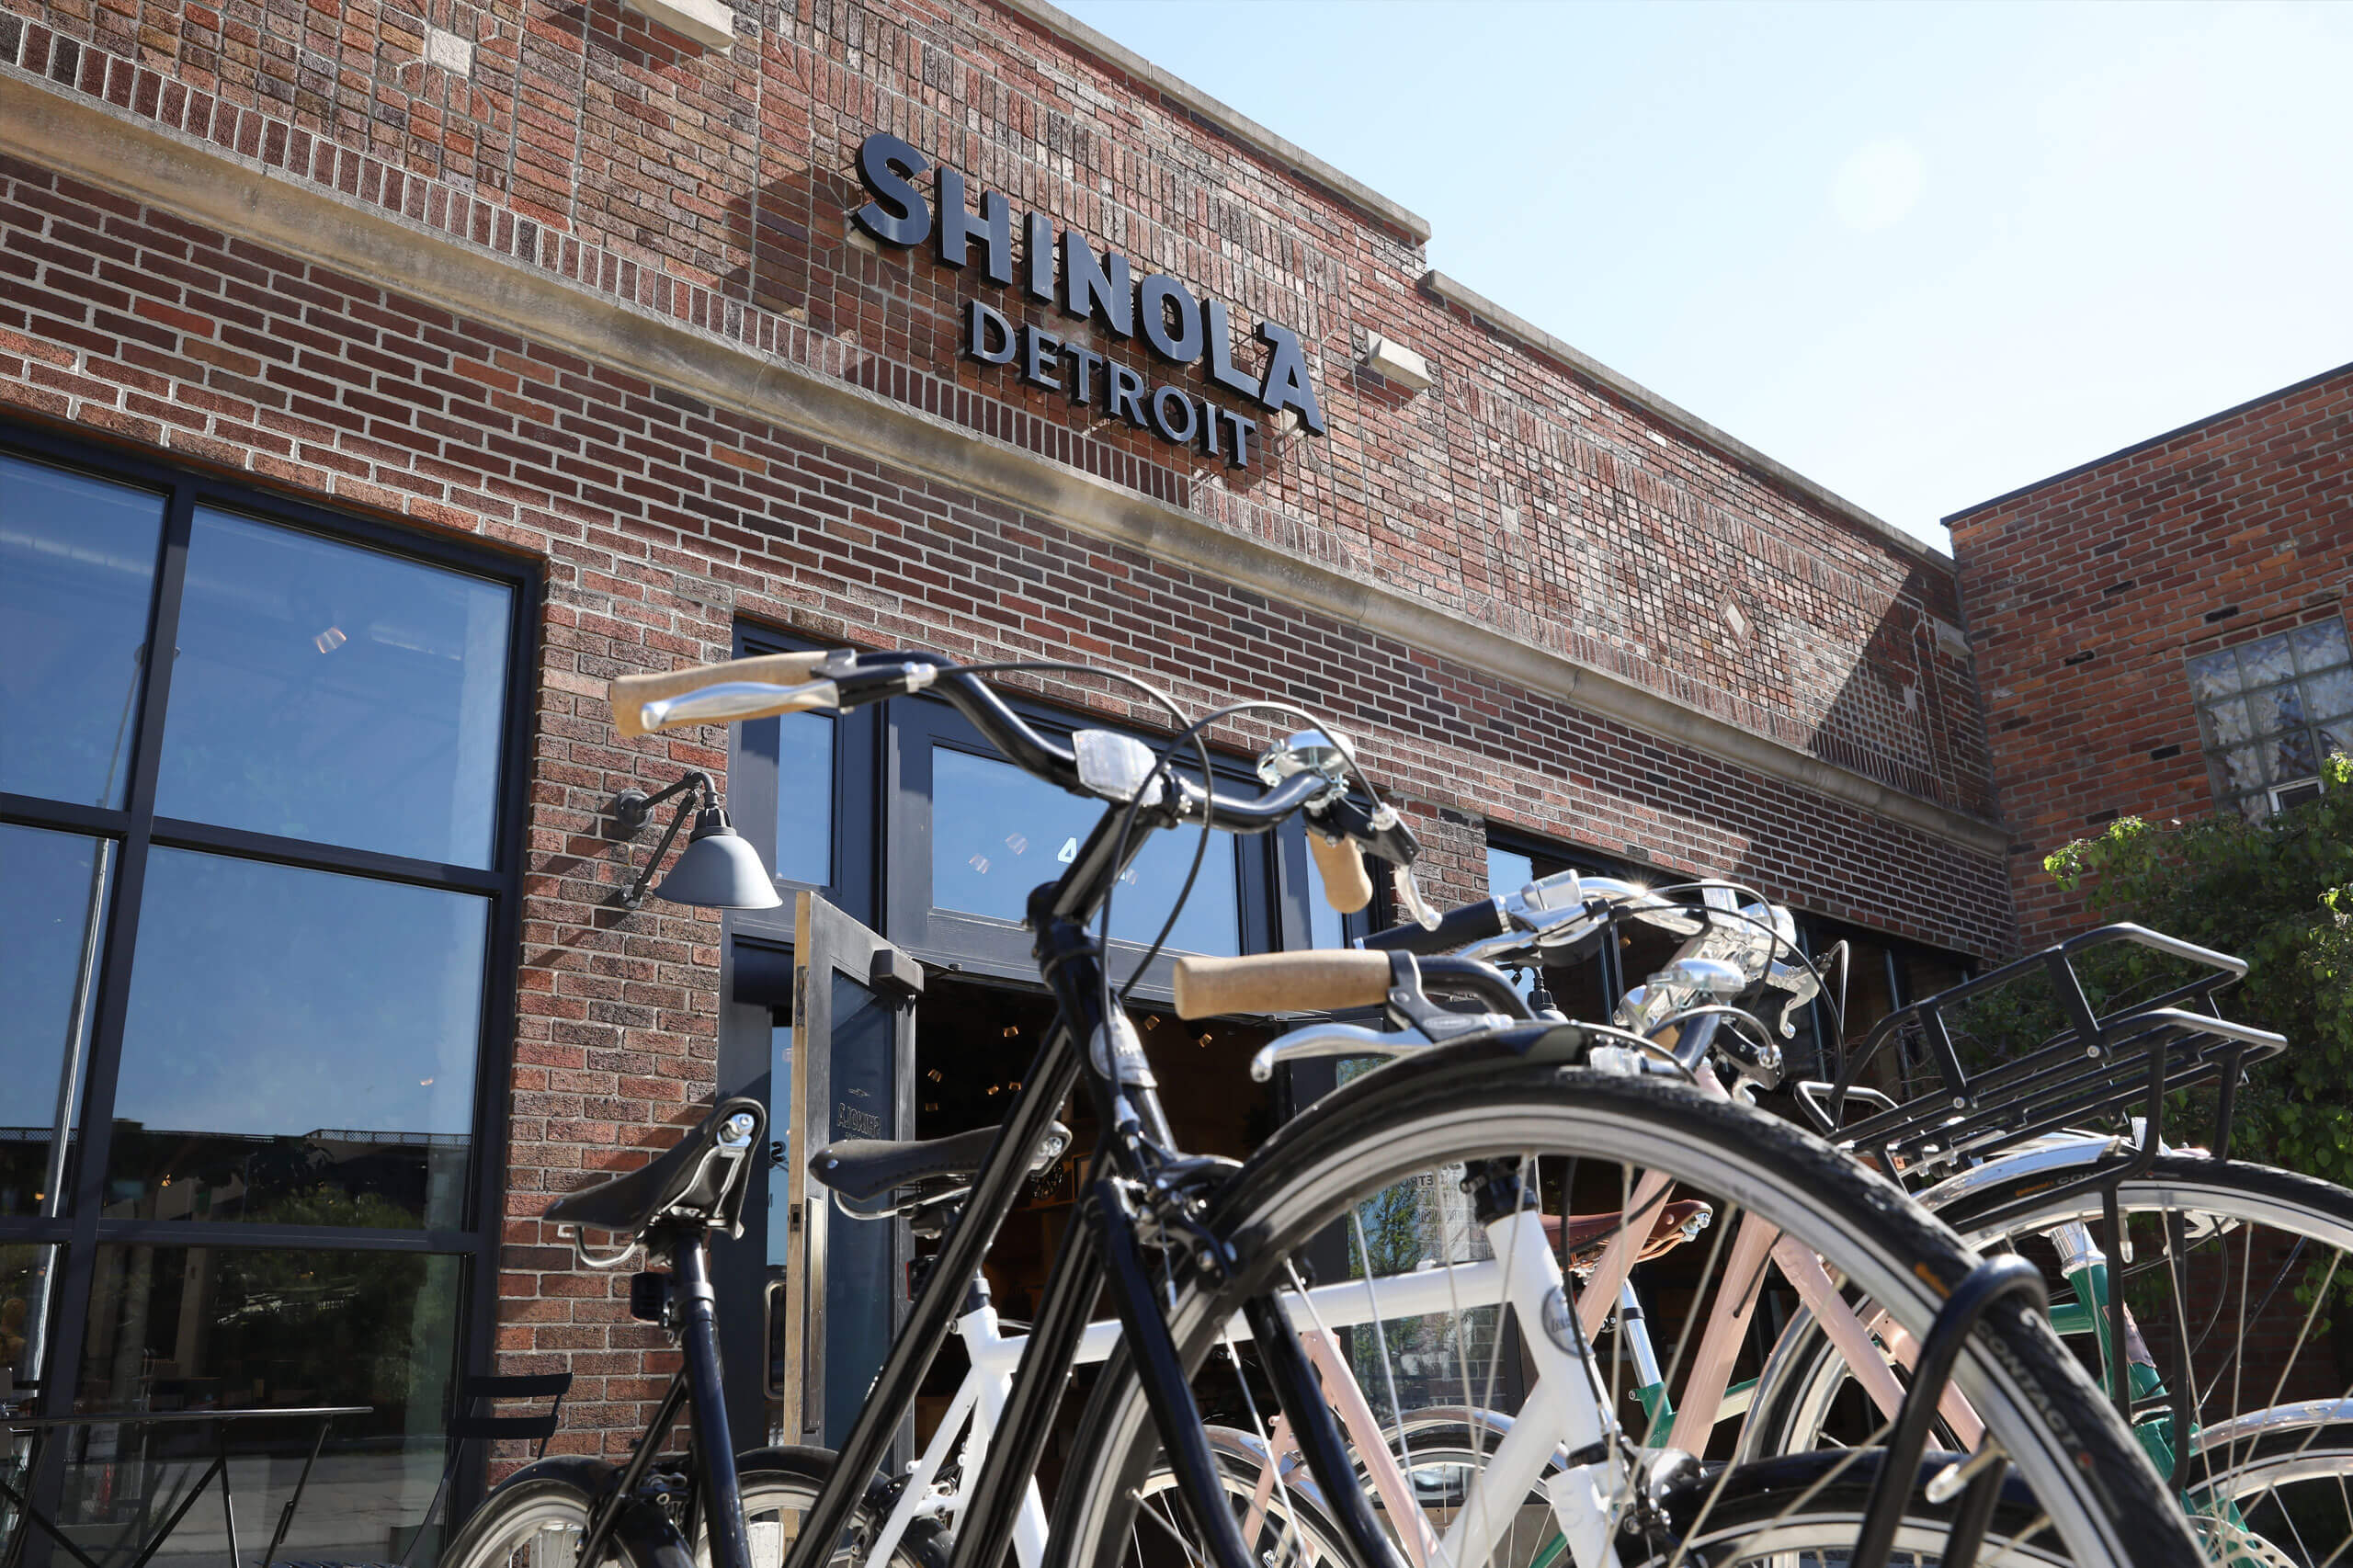 Shinola Head Quarters	Building in Detroit, Michigan, United States.